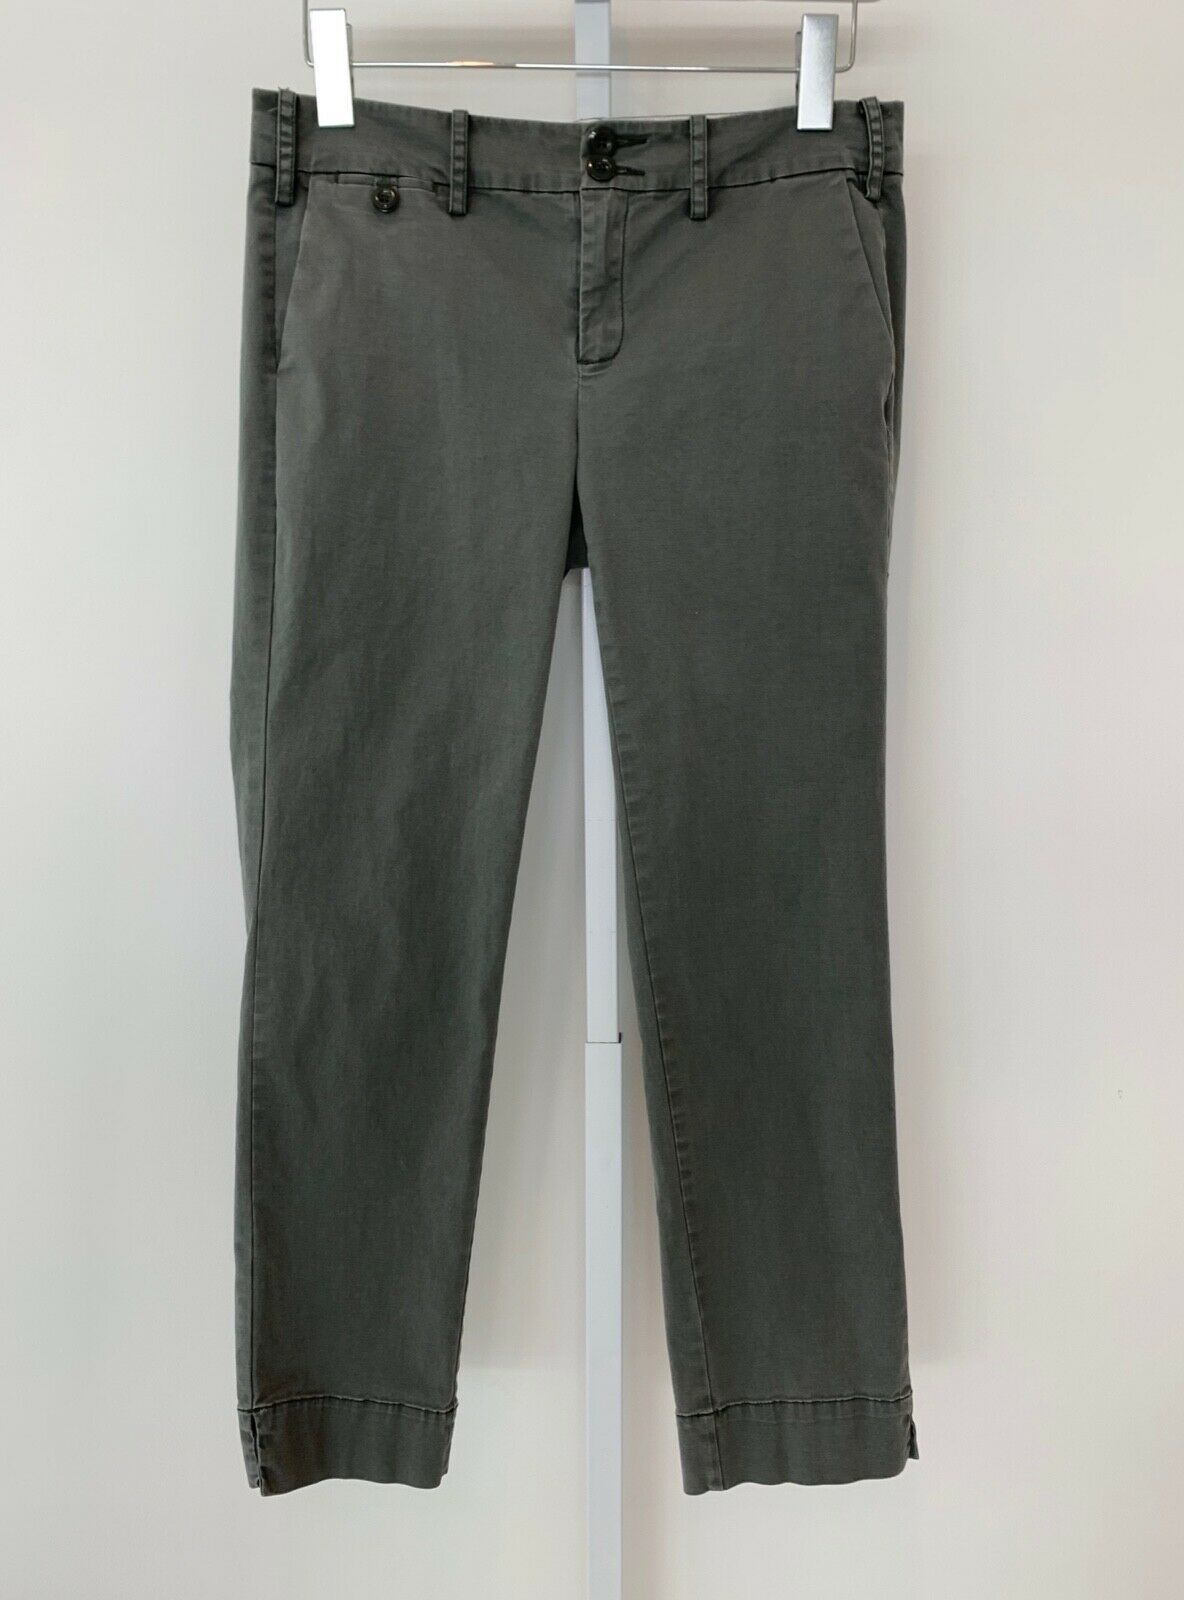 S-1 MILITARY GREEN TONE COTTON SPANDEX CROPPED FLAT FRONT PANTS SIZE 4 NWOTS